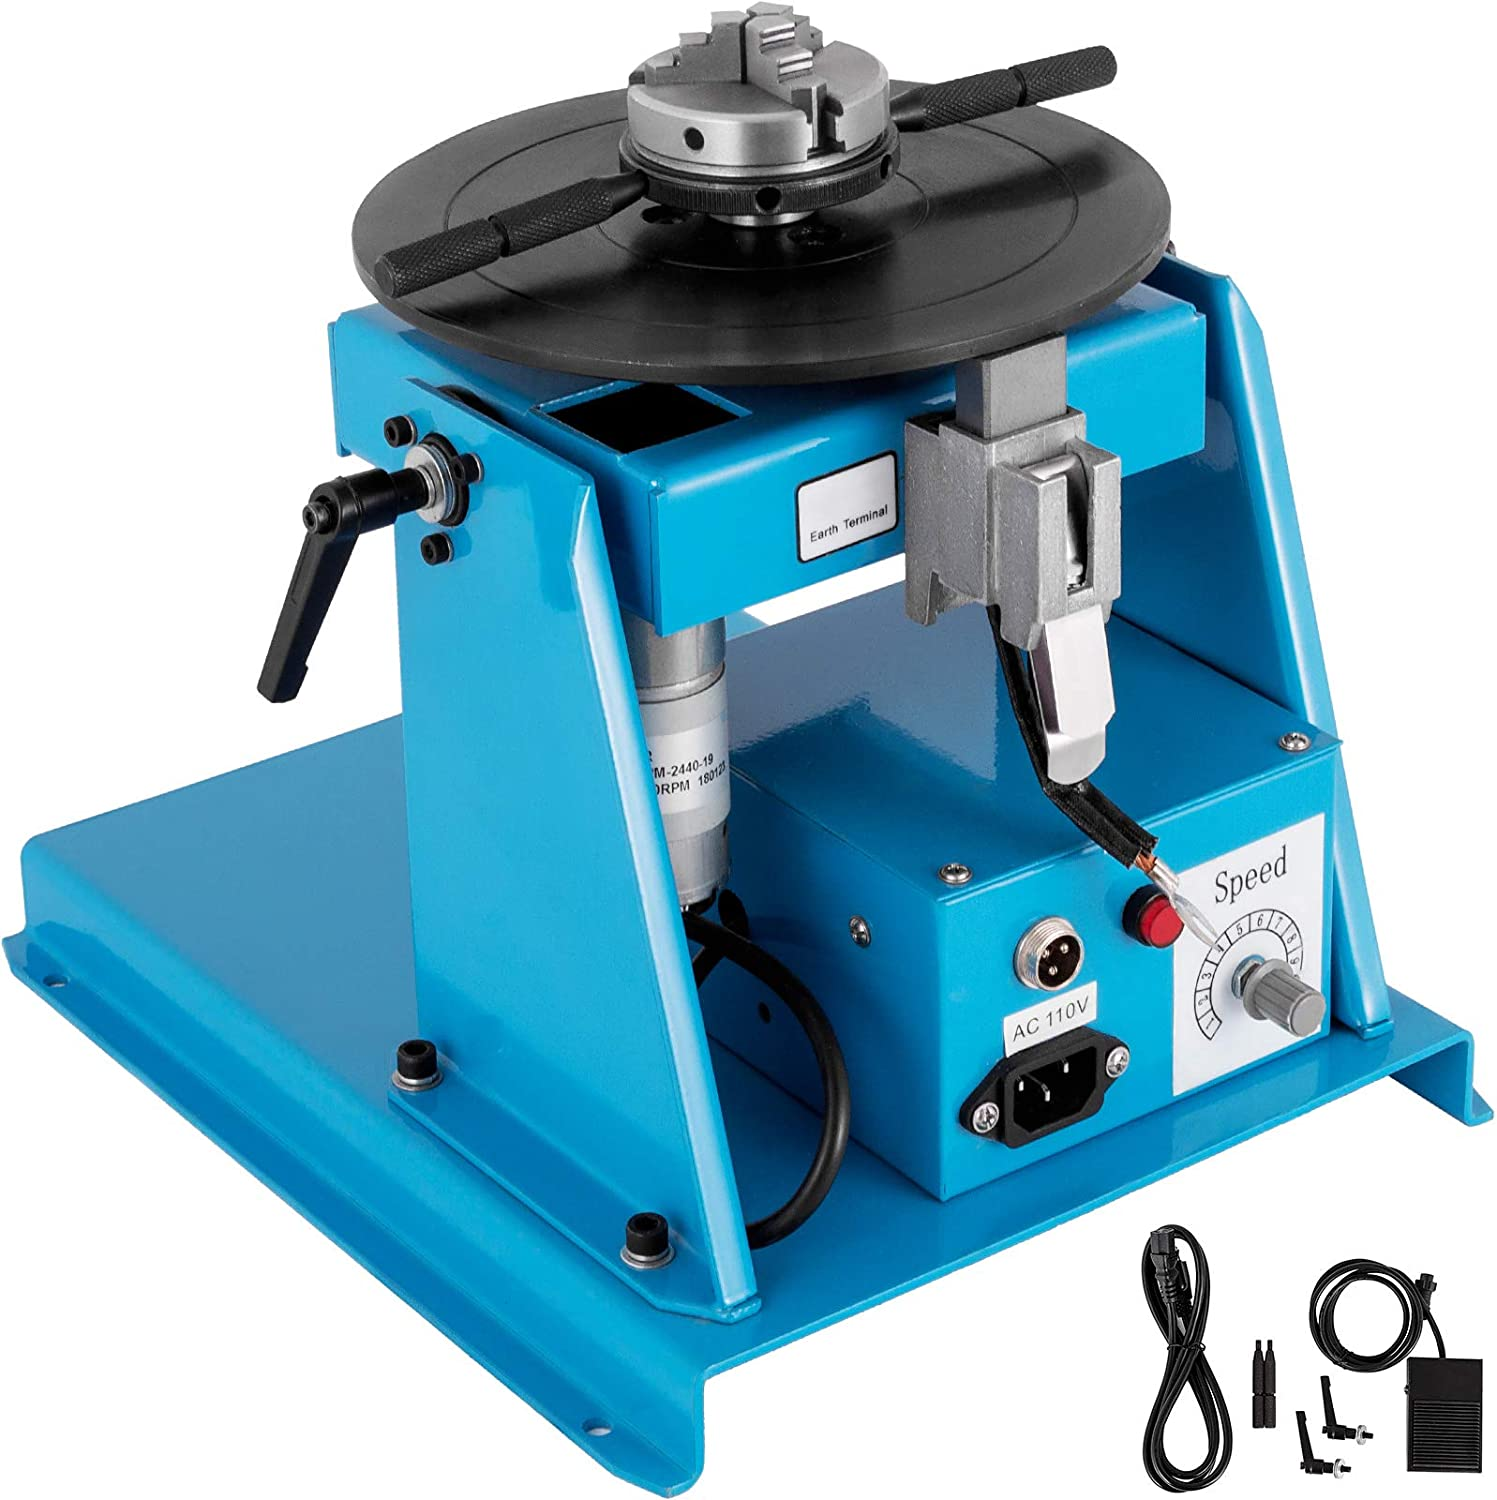 110V 60HZ 2-10 r//min Rotary Welding Positioner Turntable Table for Pipe Welding